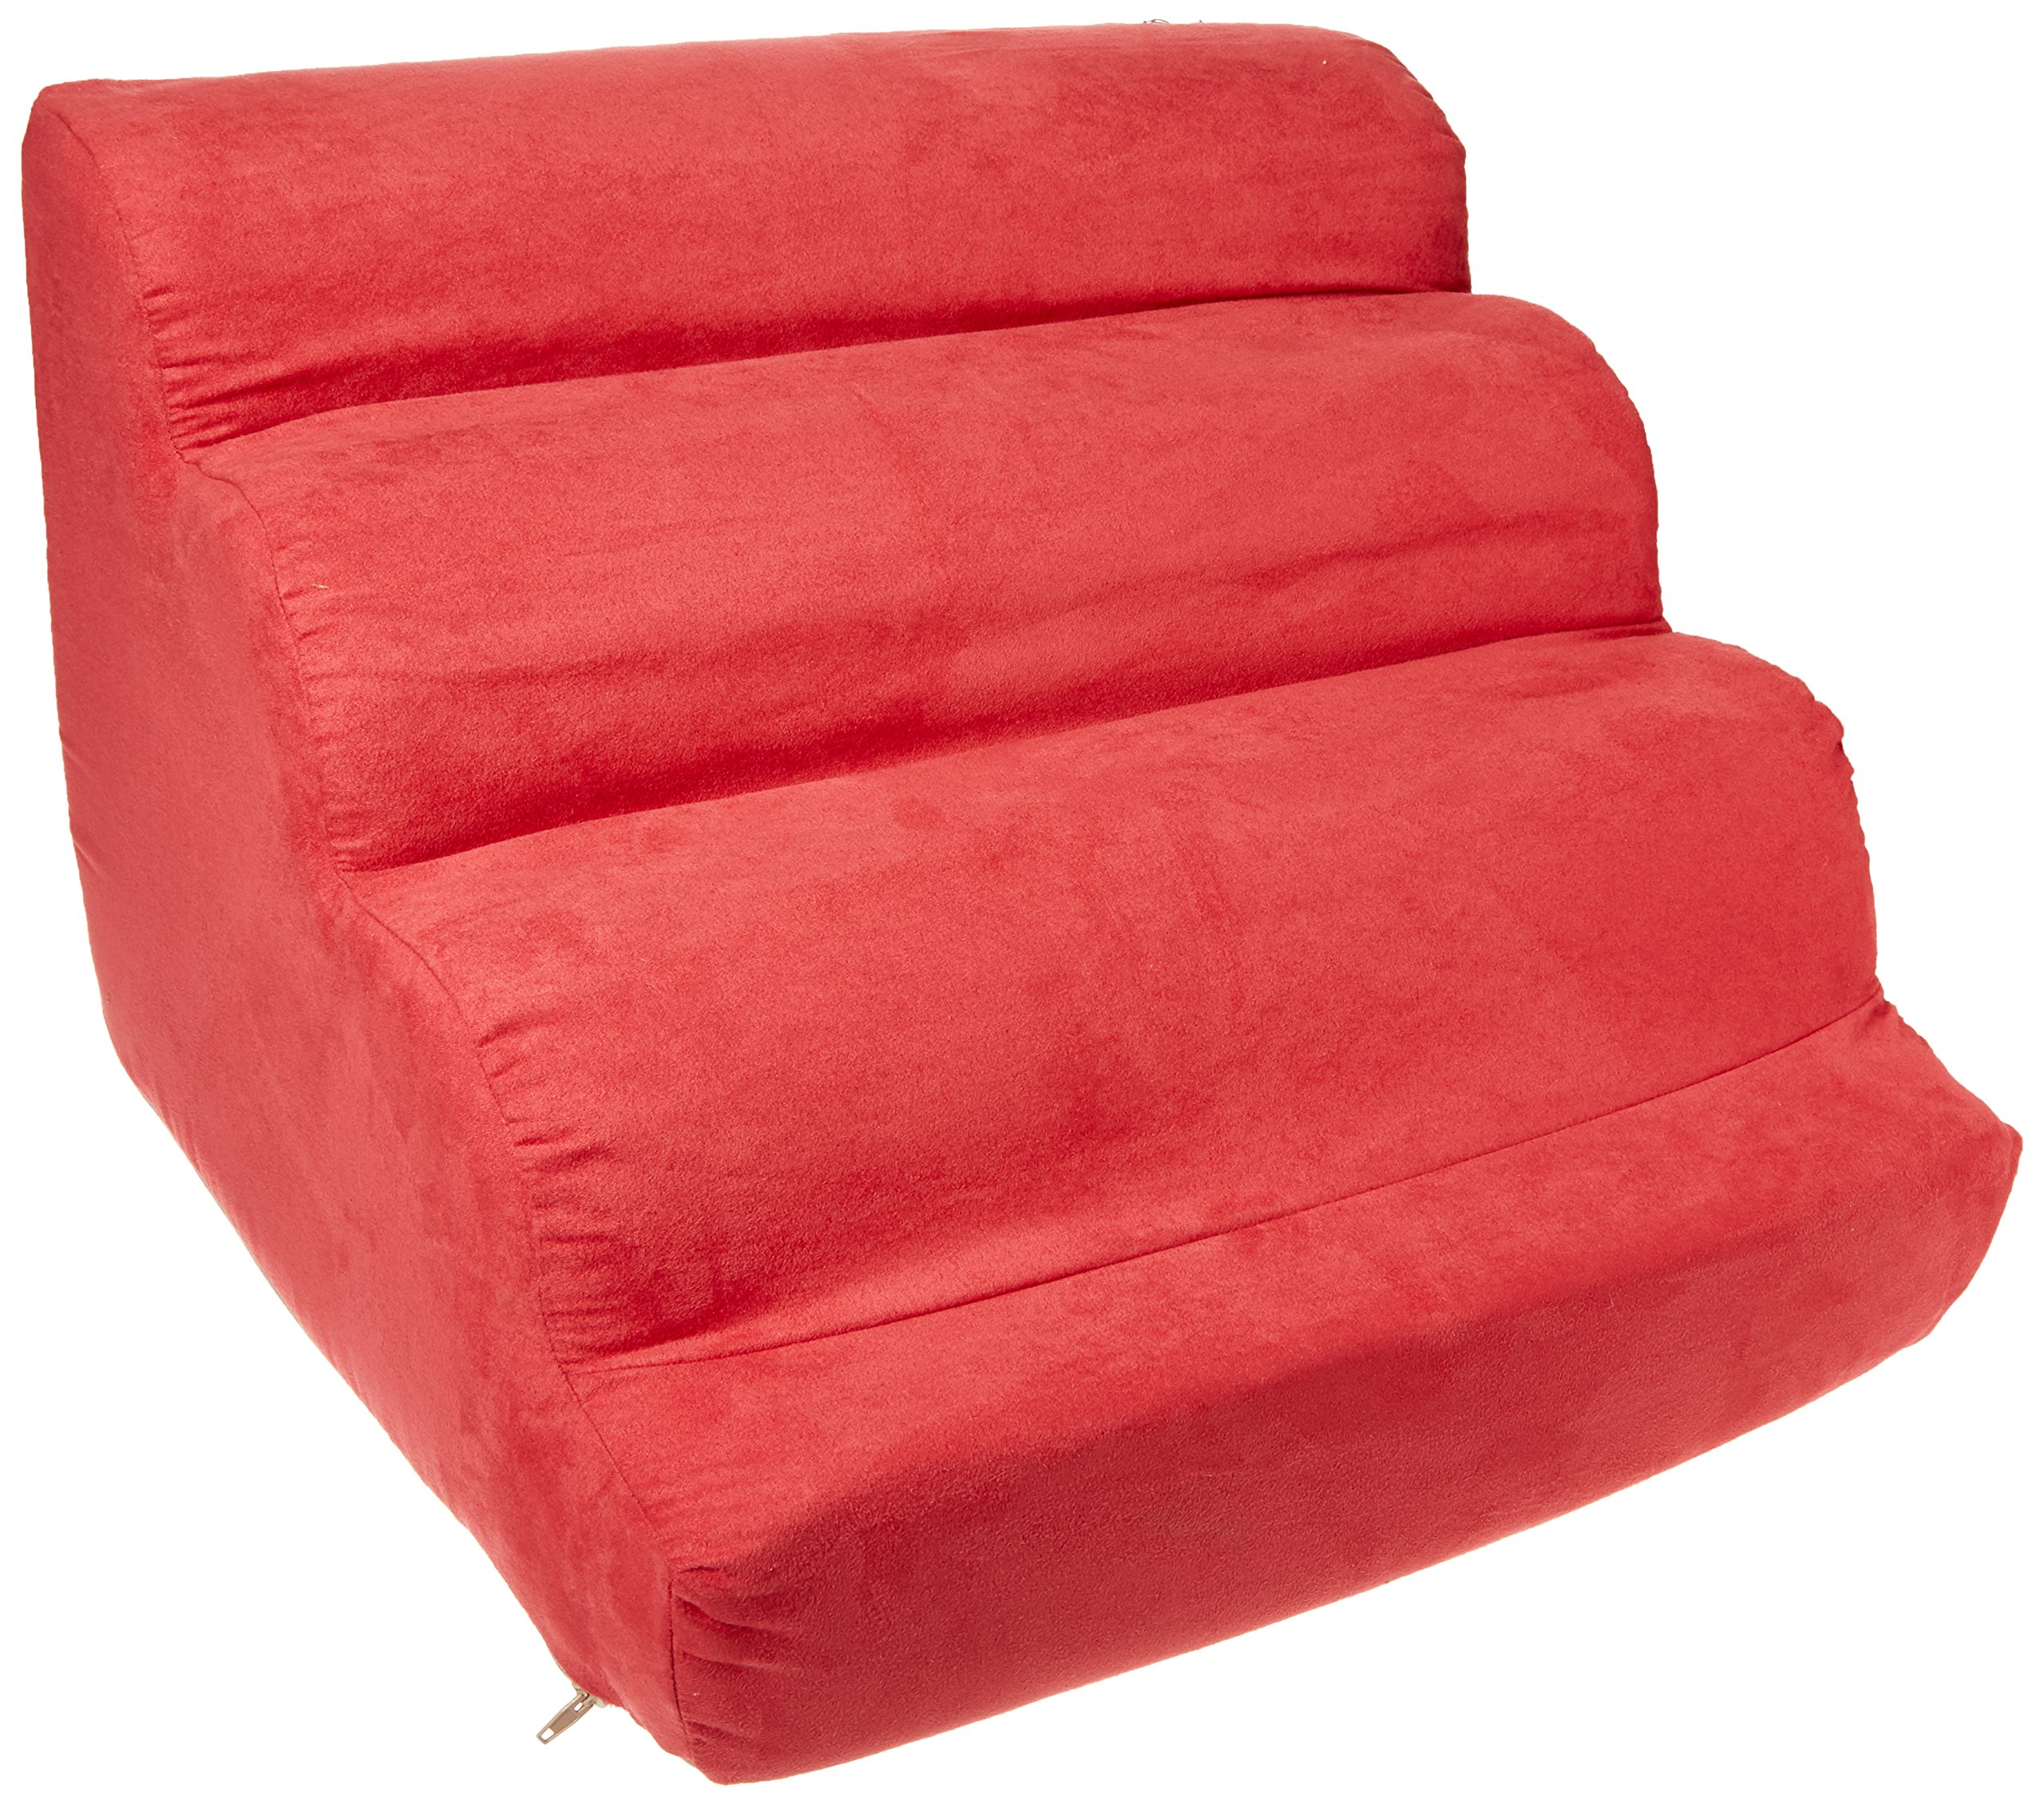 Snoozer Scalloped Pet Ramp, Small, Red